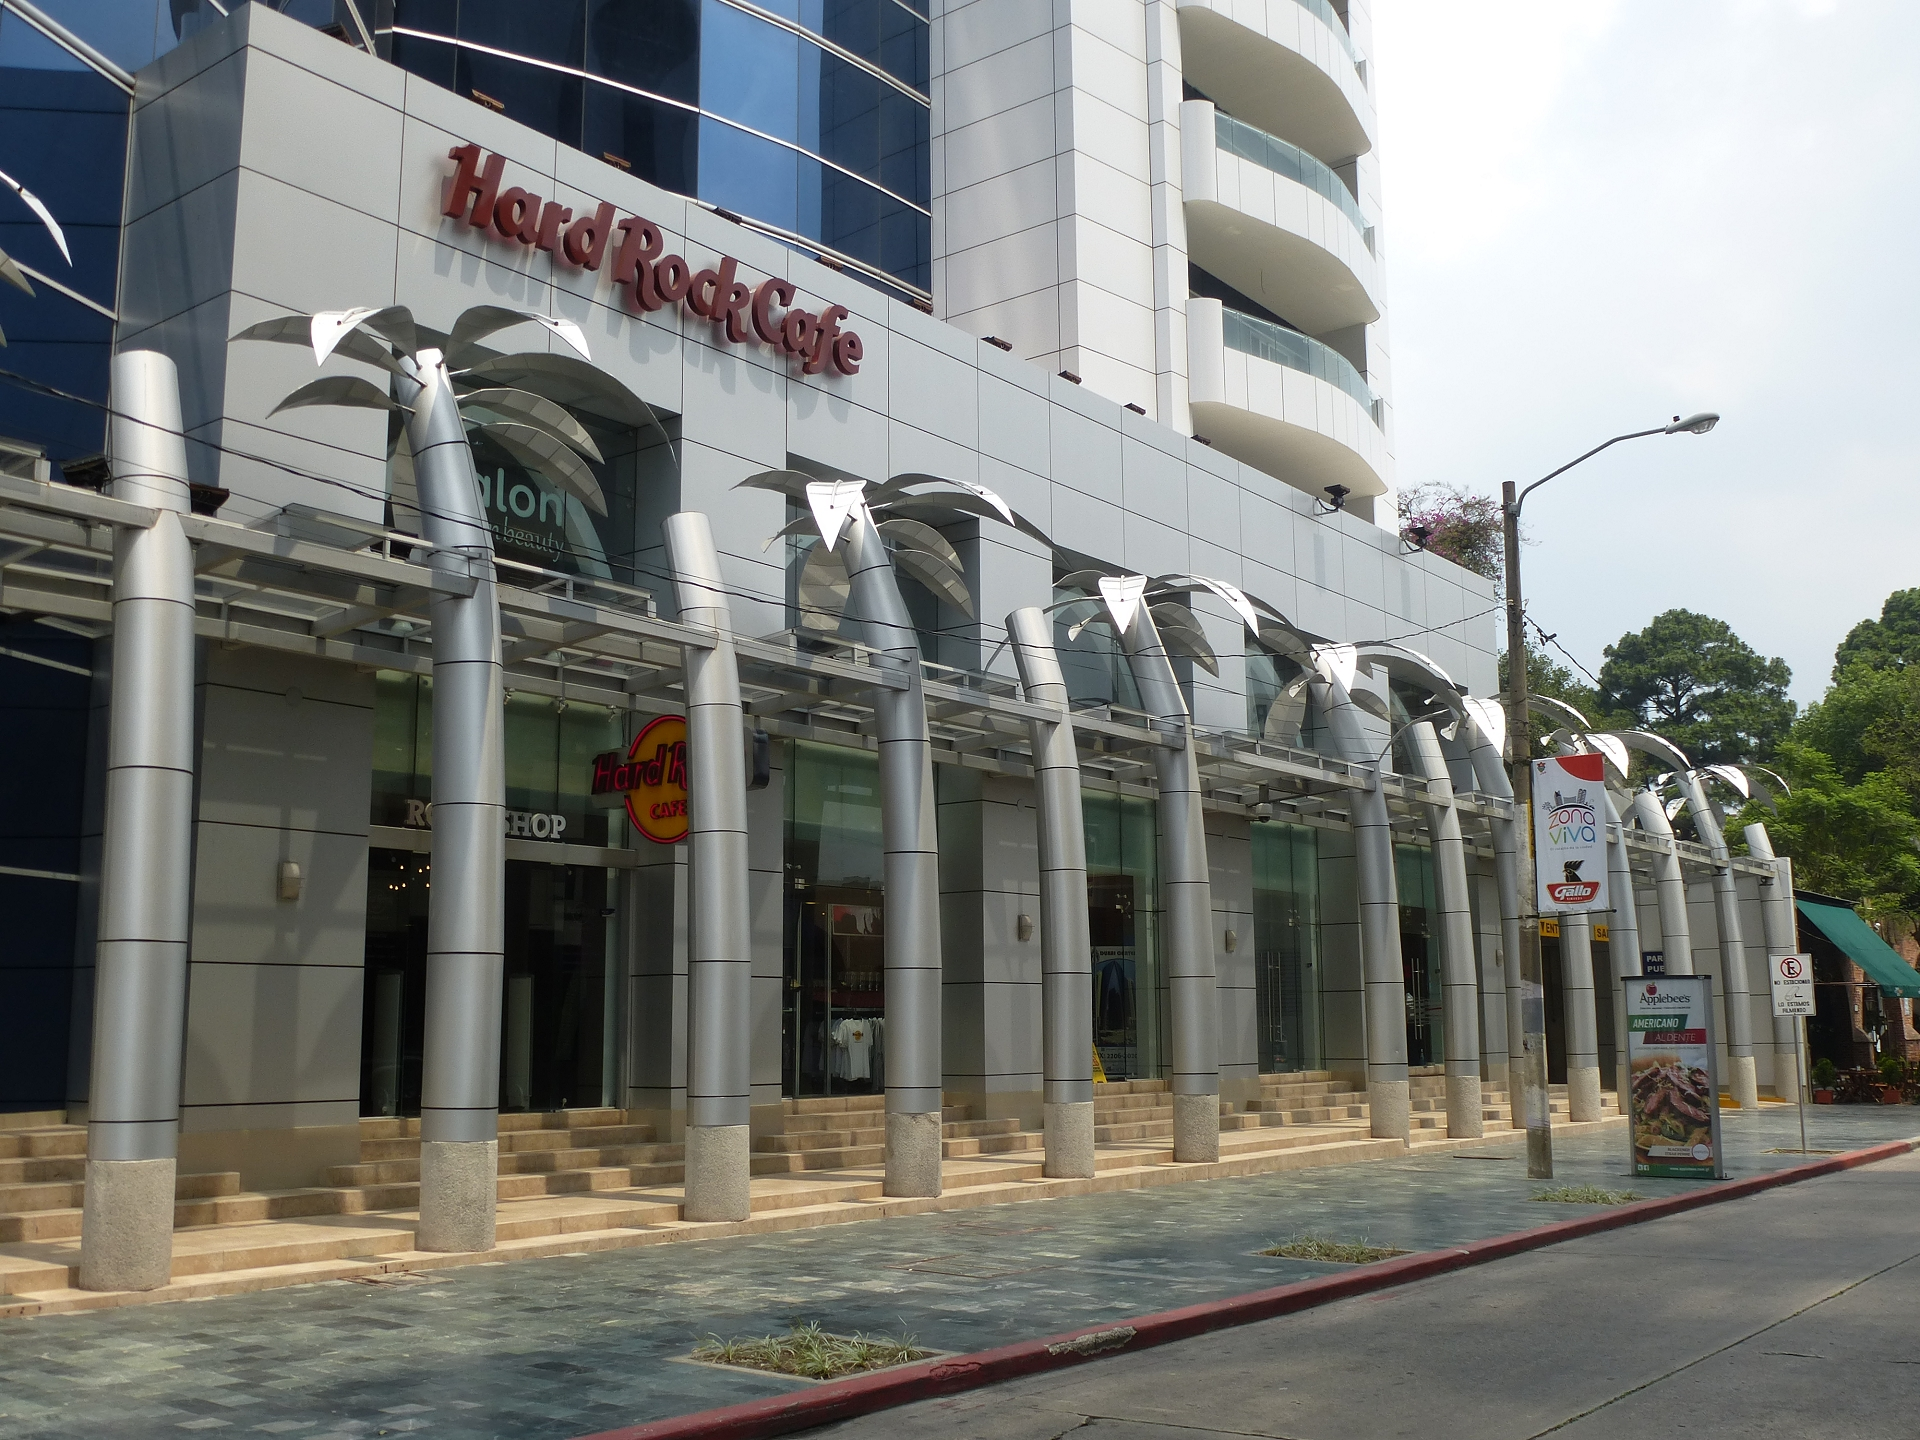 Hard Rock Cafe Guatemala City